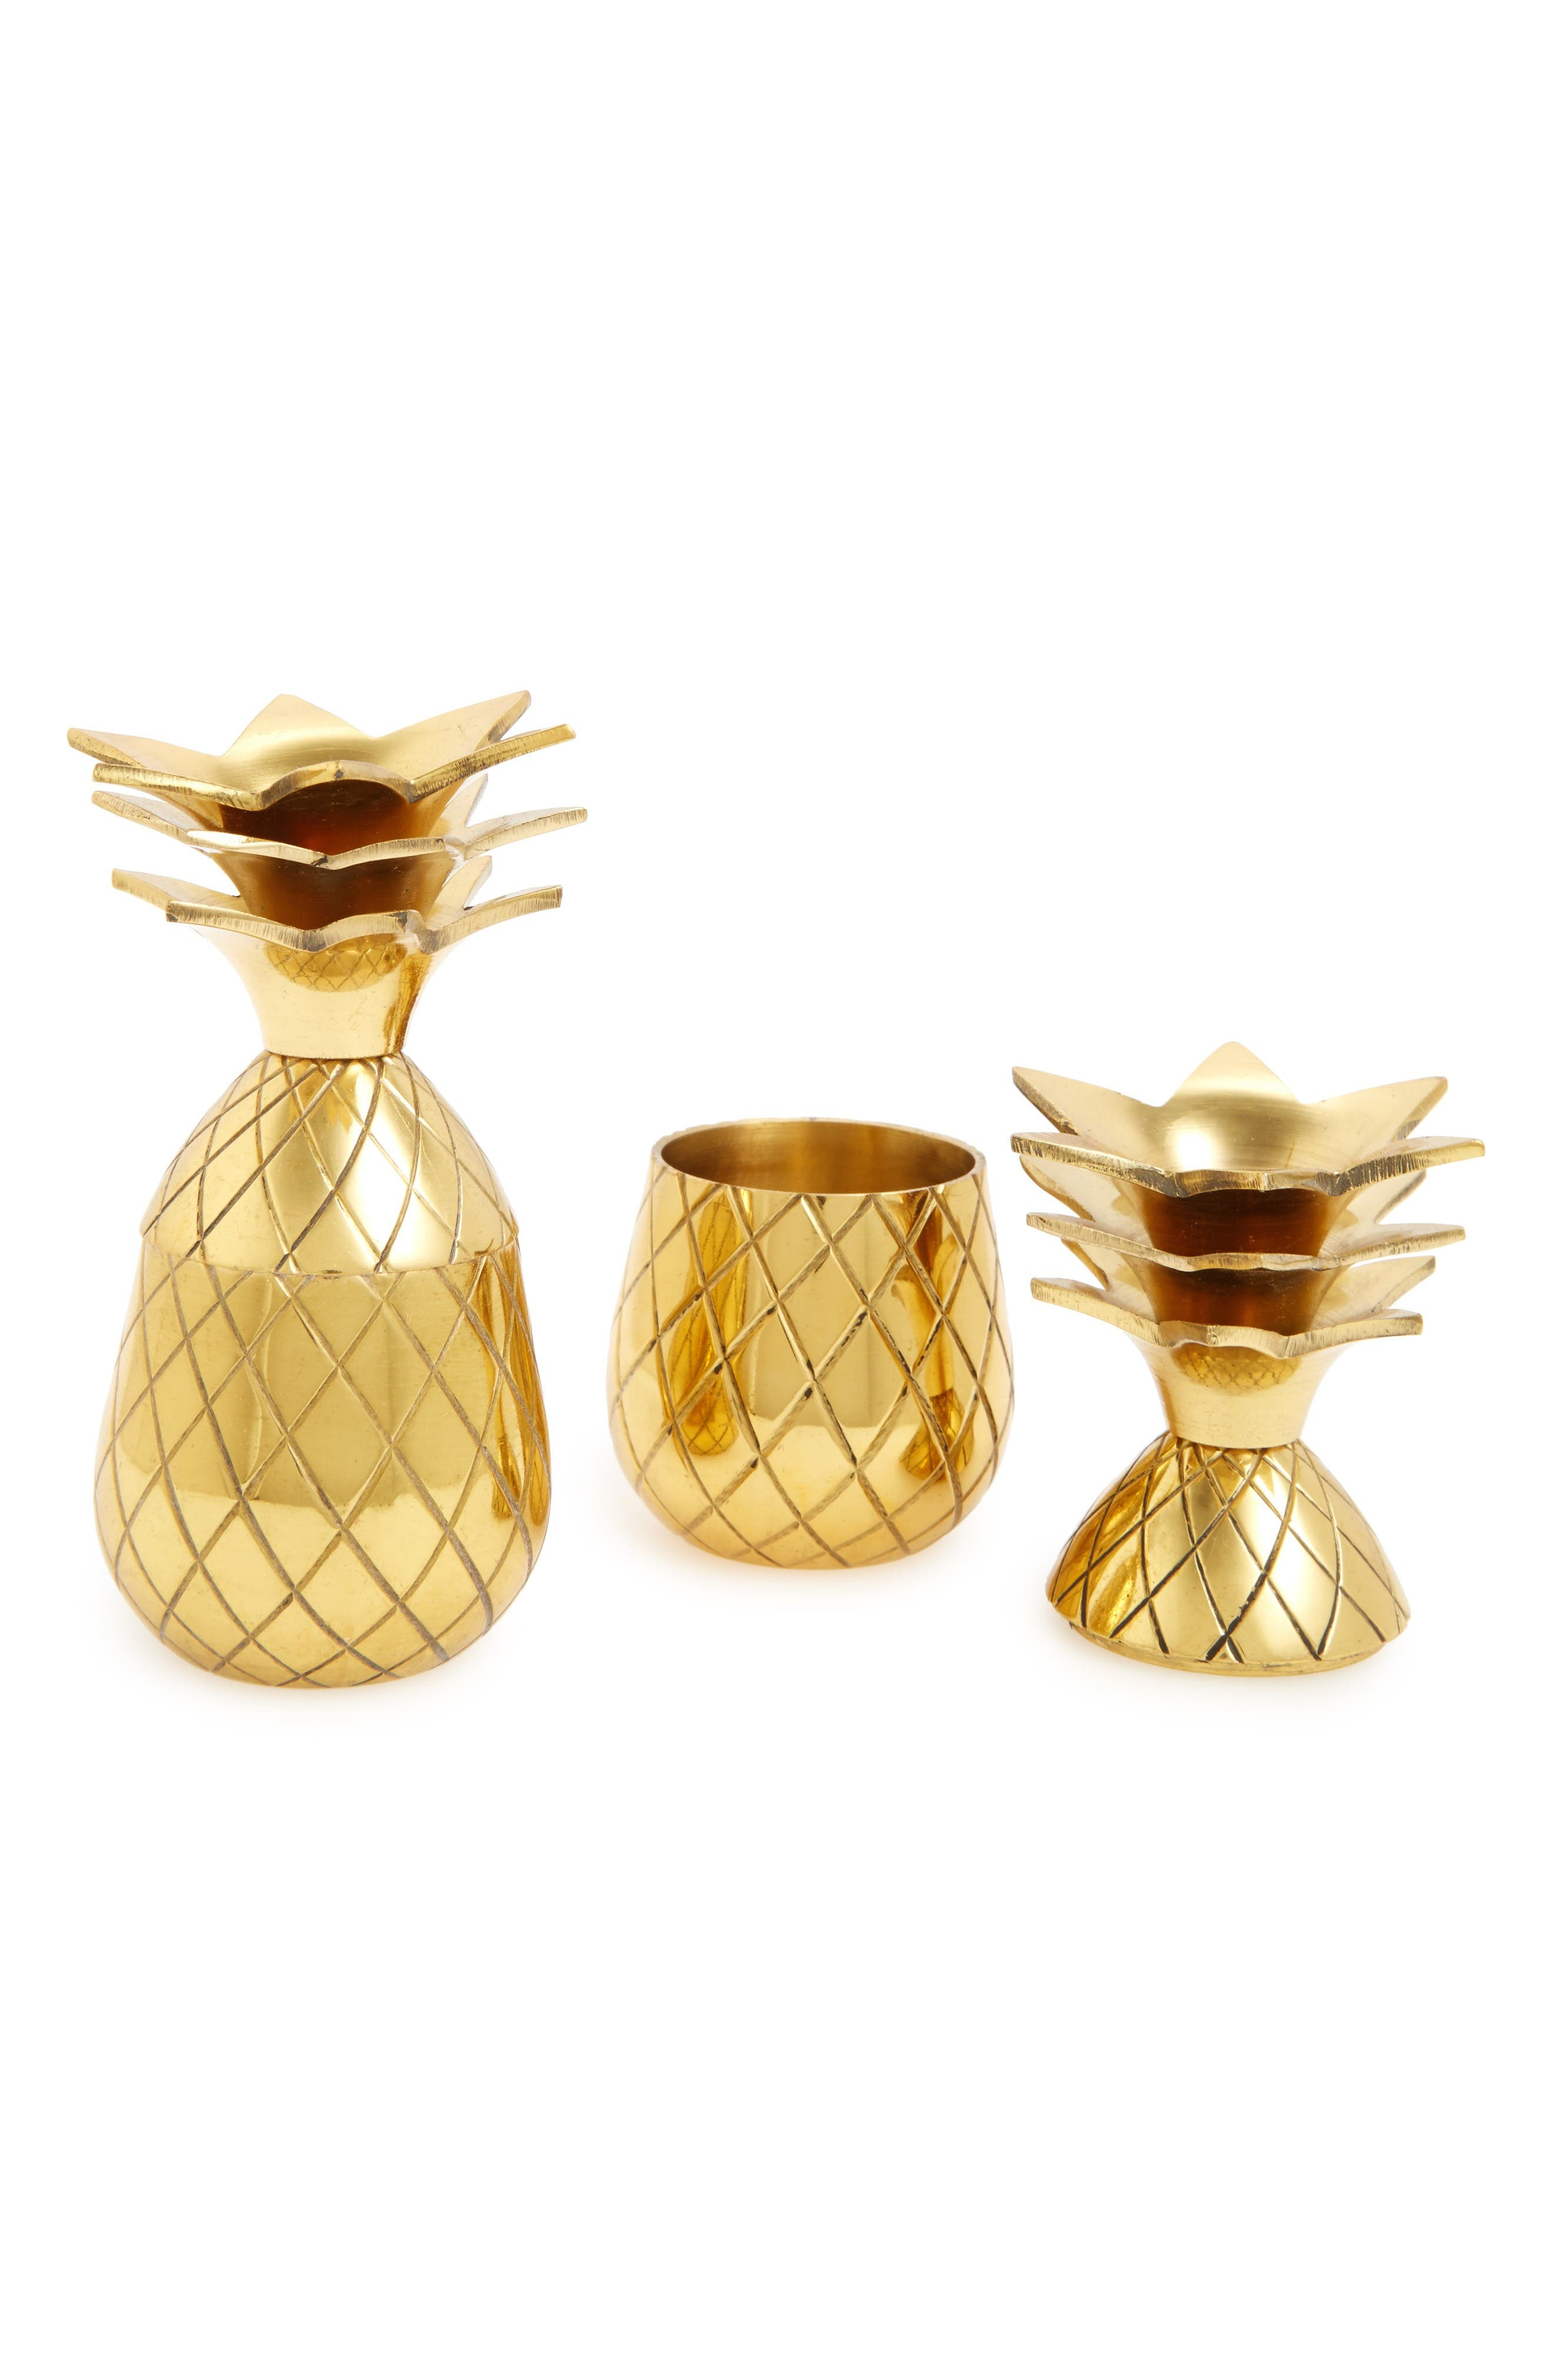 Pineapple Shot Glasses,                         Main,                         color, Gold